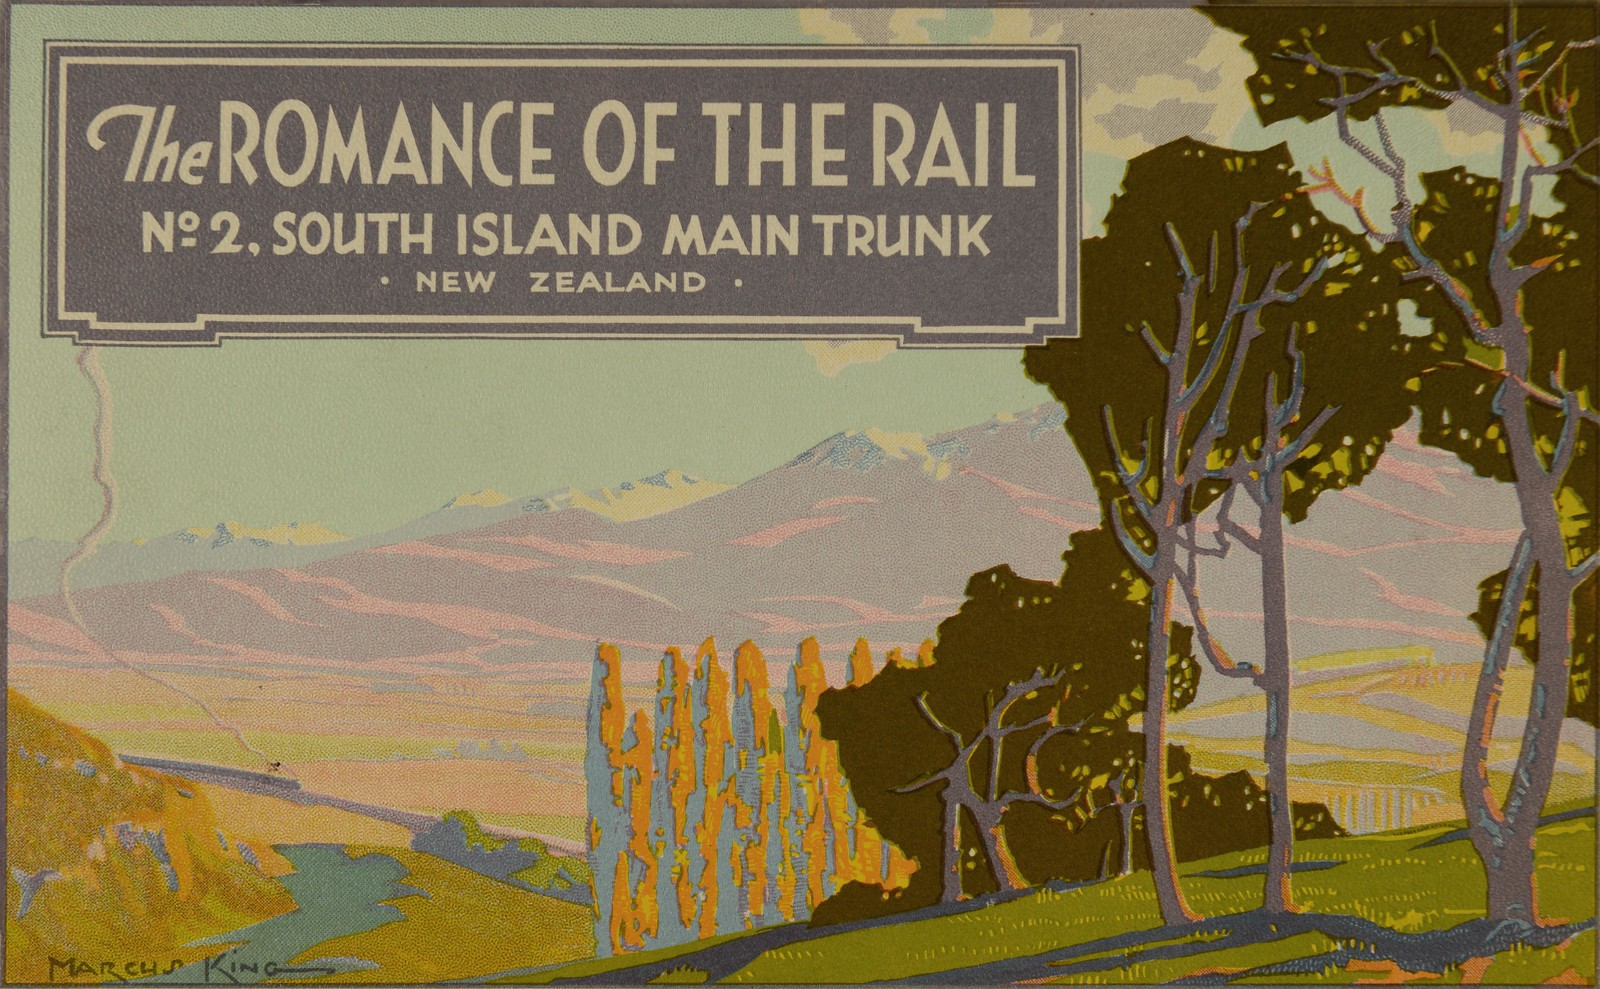 Poster of a hillside with trees and a train in the background